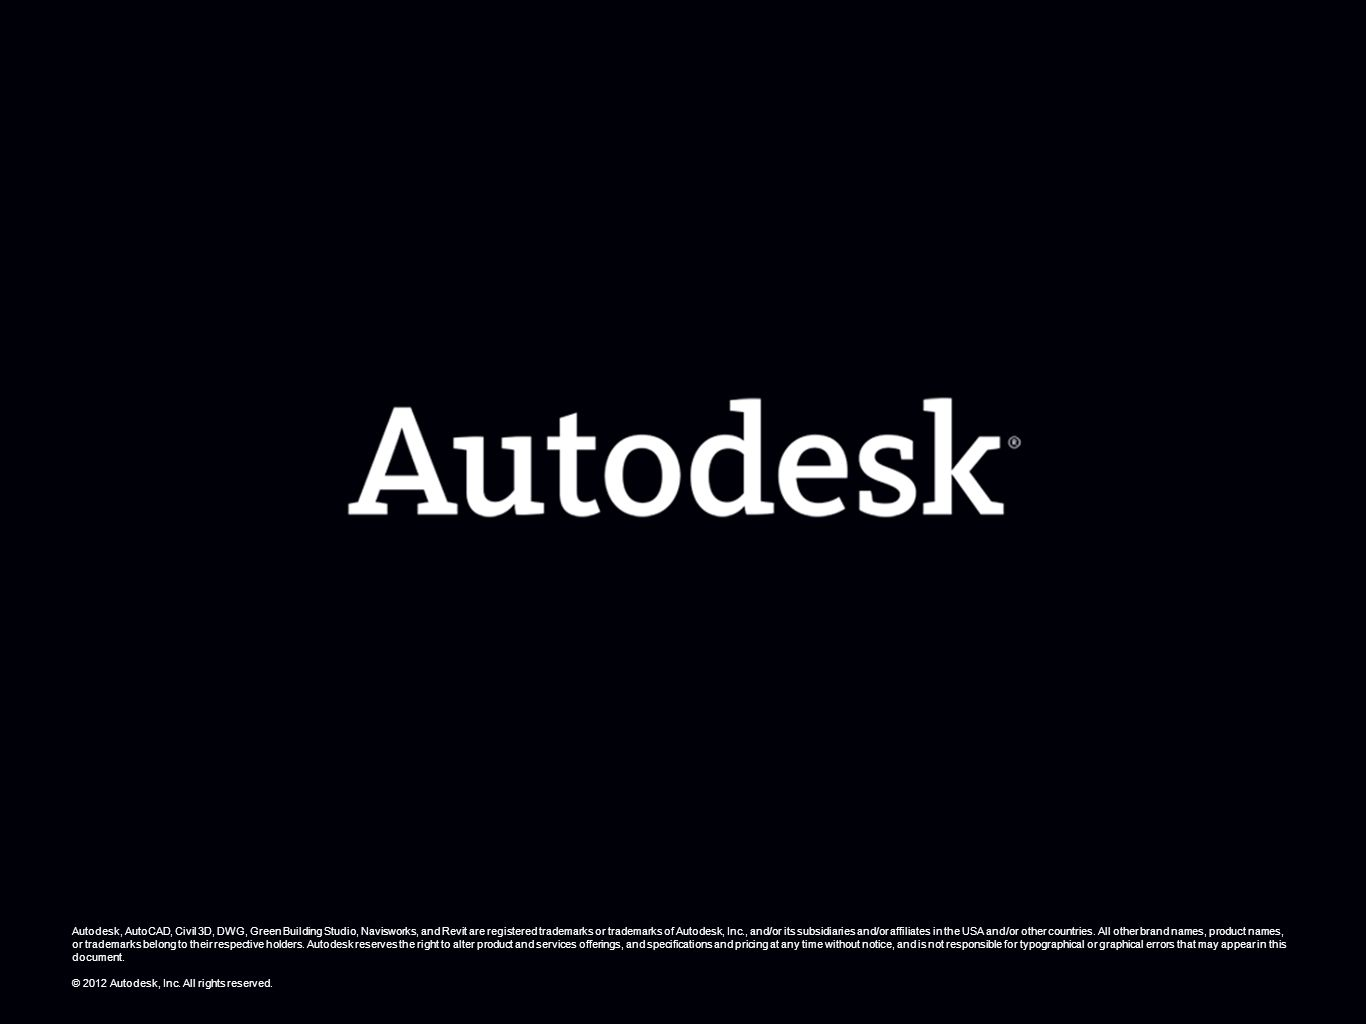 © 2012 Autodesk Autodesk, AutoCAD, Civil 3D, DWG, Green Building Studio, Navisworks, and Revit are registered trademarks or trademarks of Autodesk, In